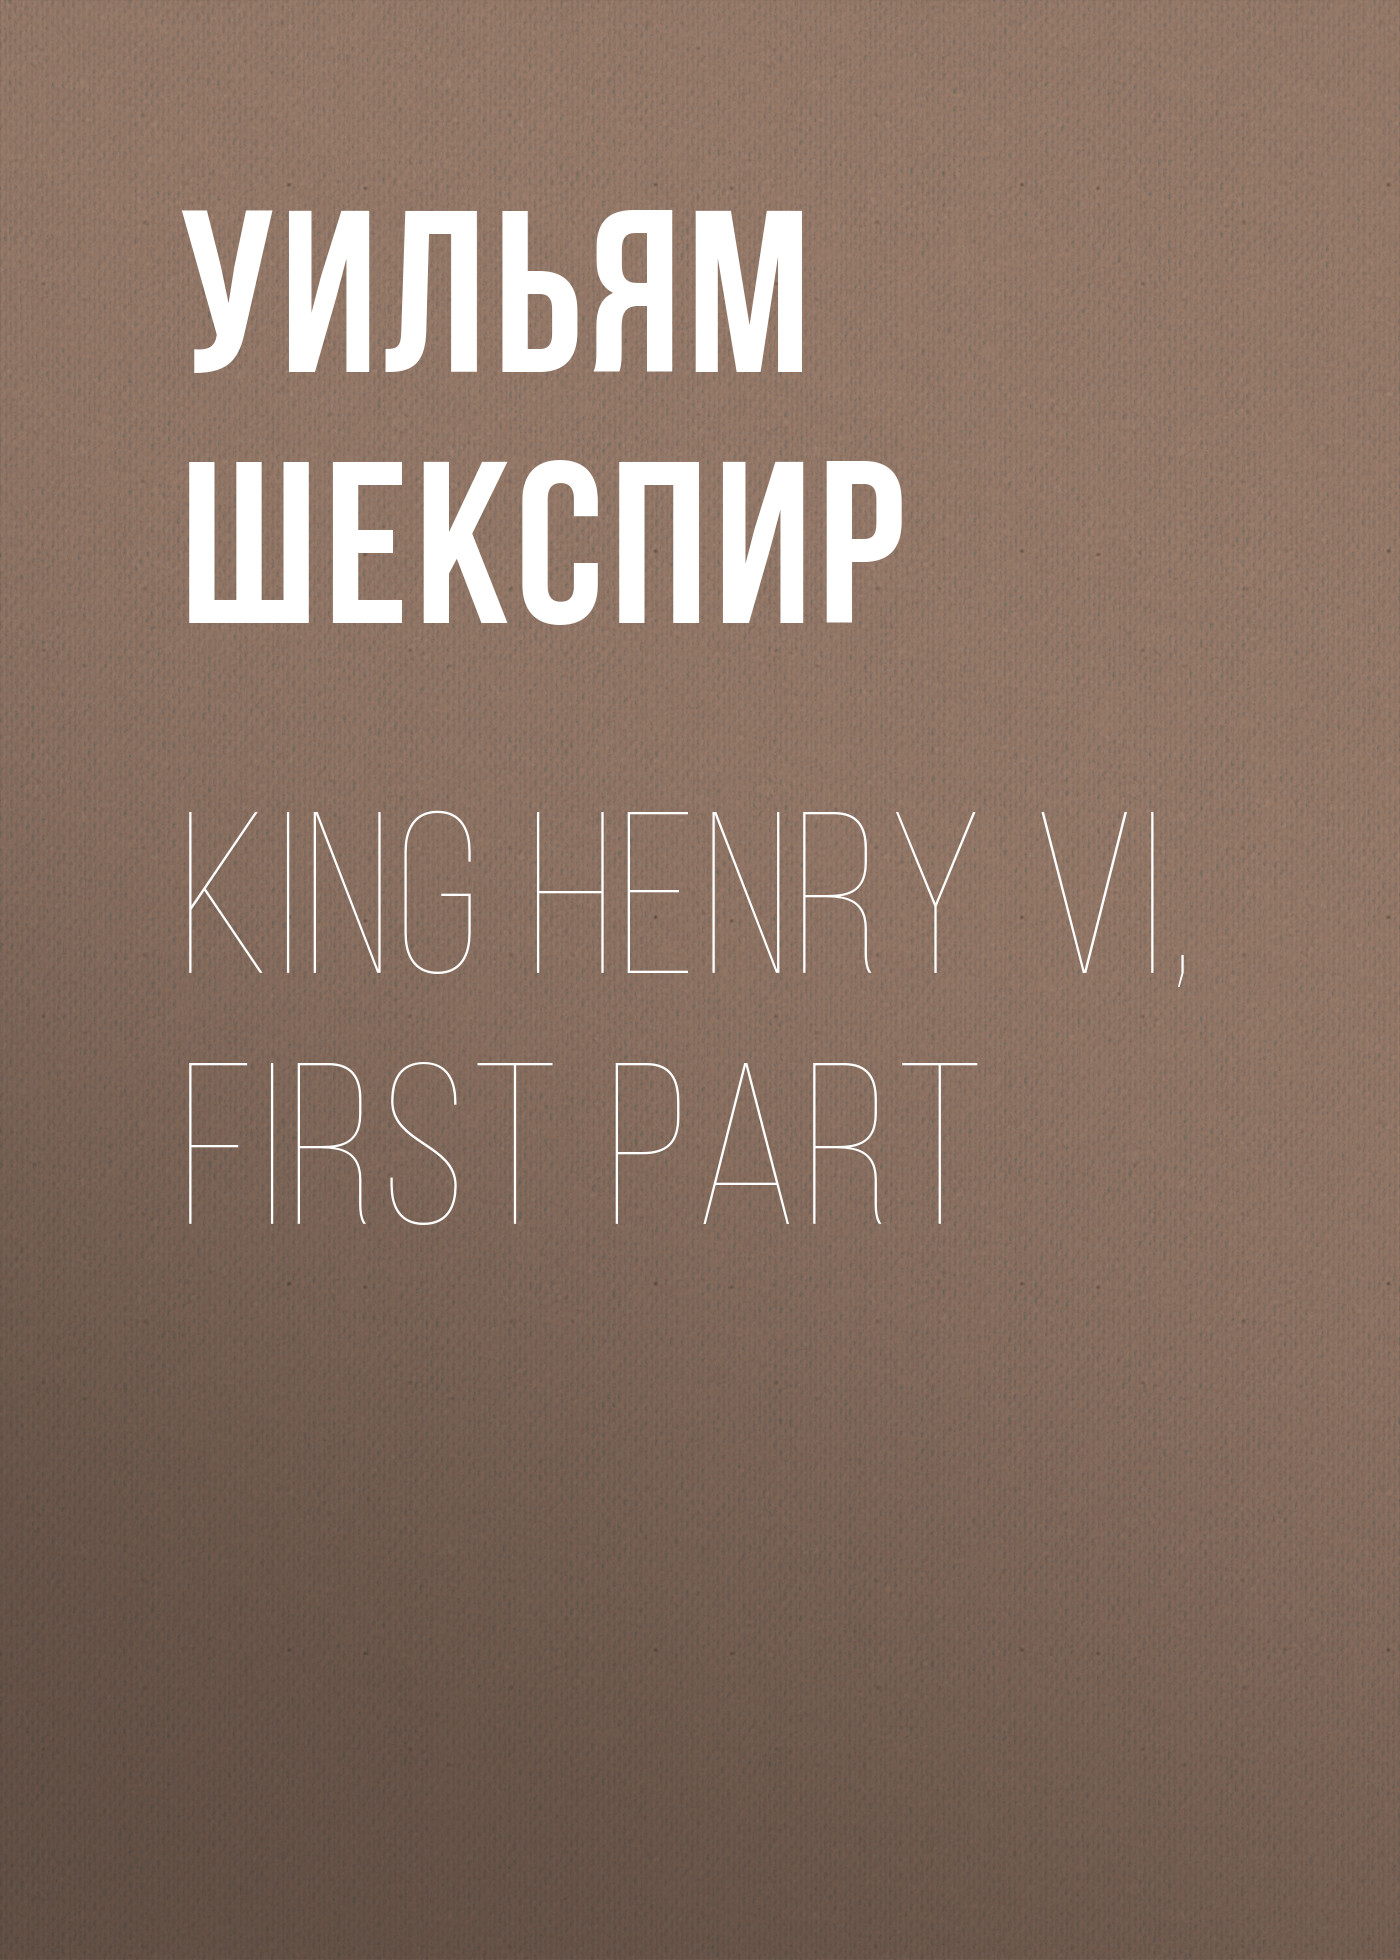 Уильям Шекспир King Henry VI, First Part уильям шекспир king henry vi first part